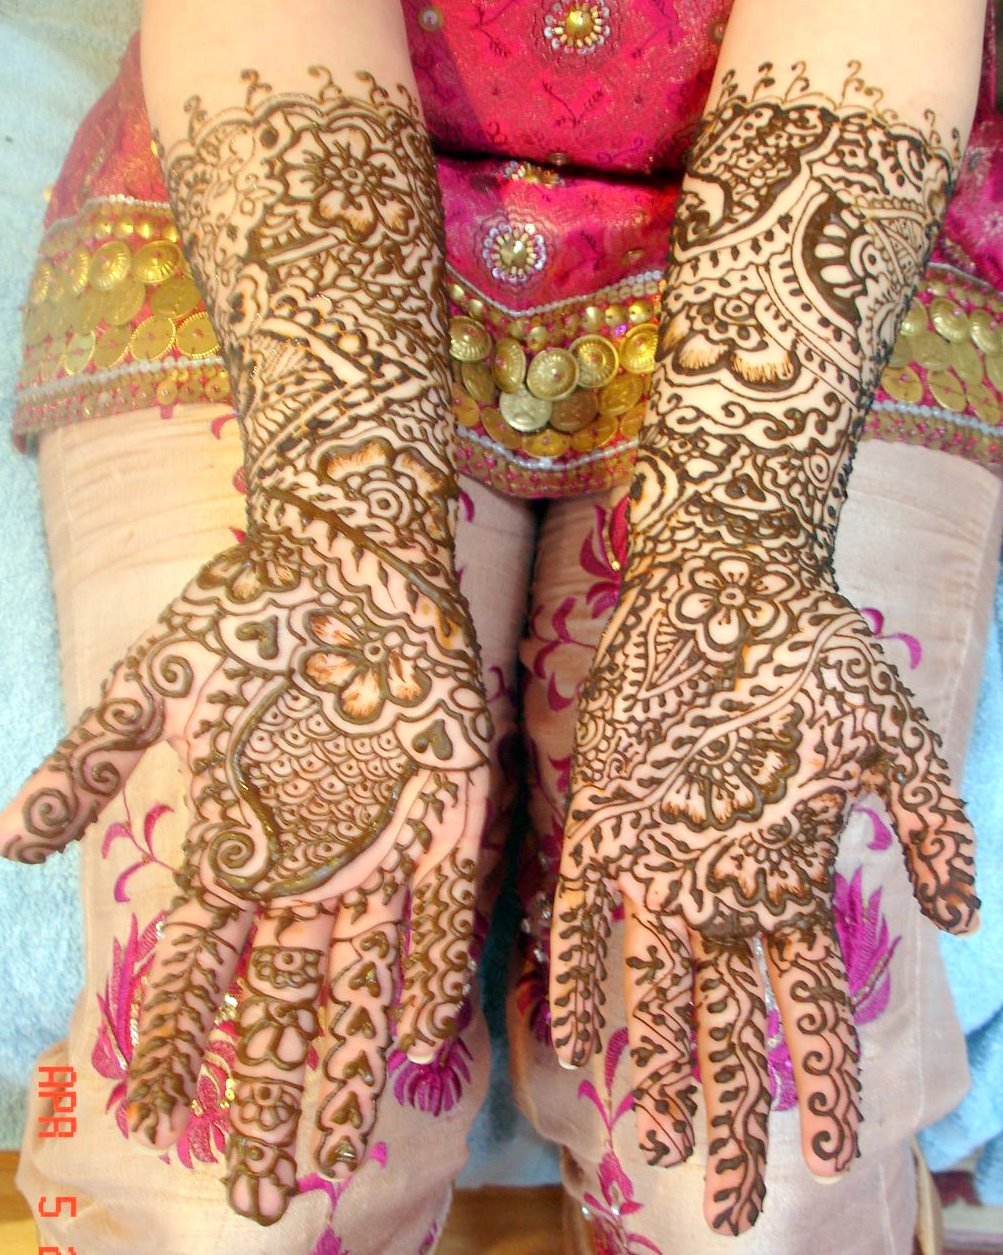 Bridal Mehndi Designs Peacock Hands And Feet Designs For Full